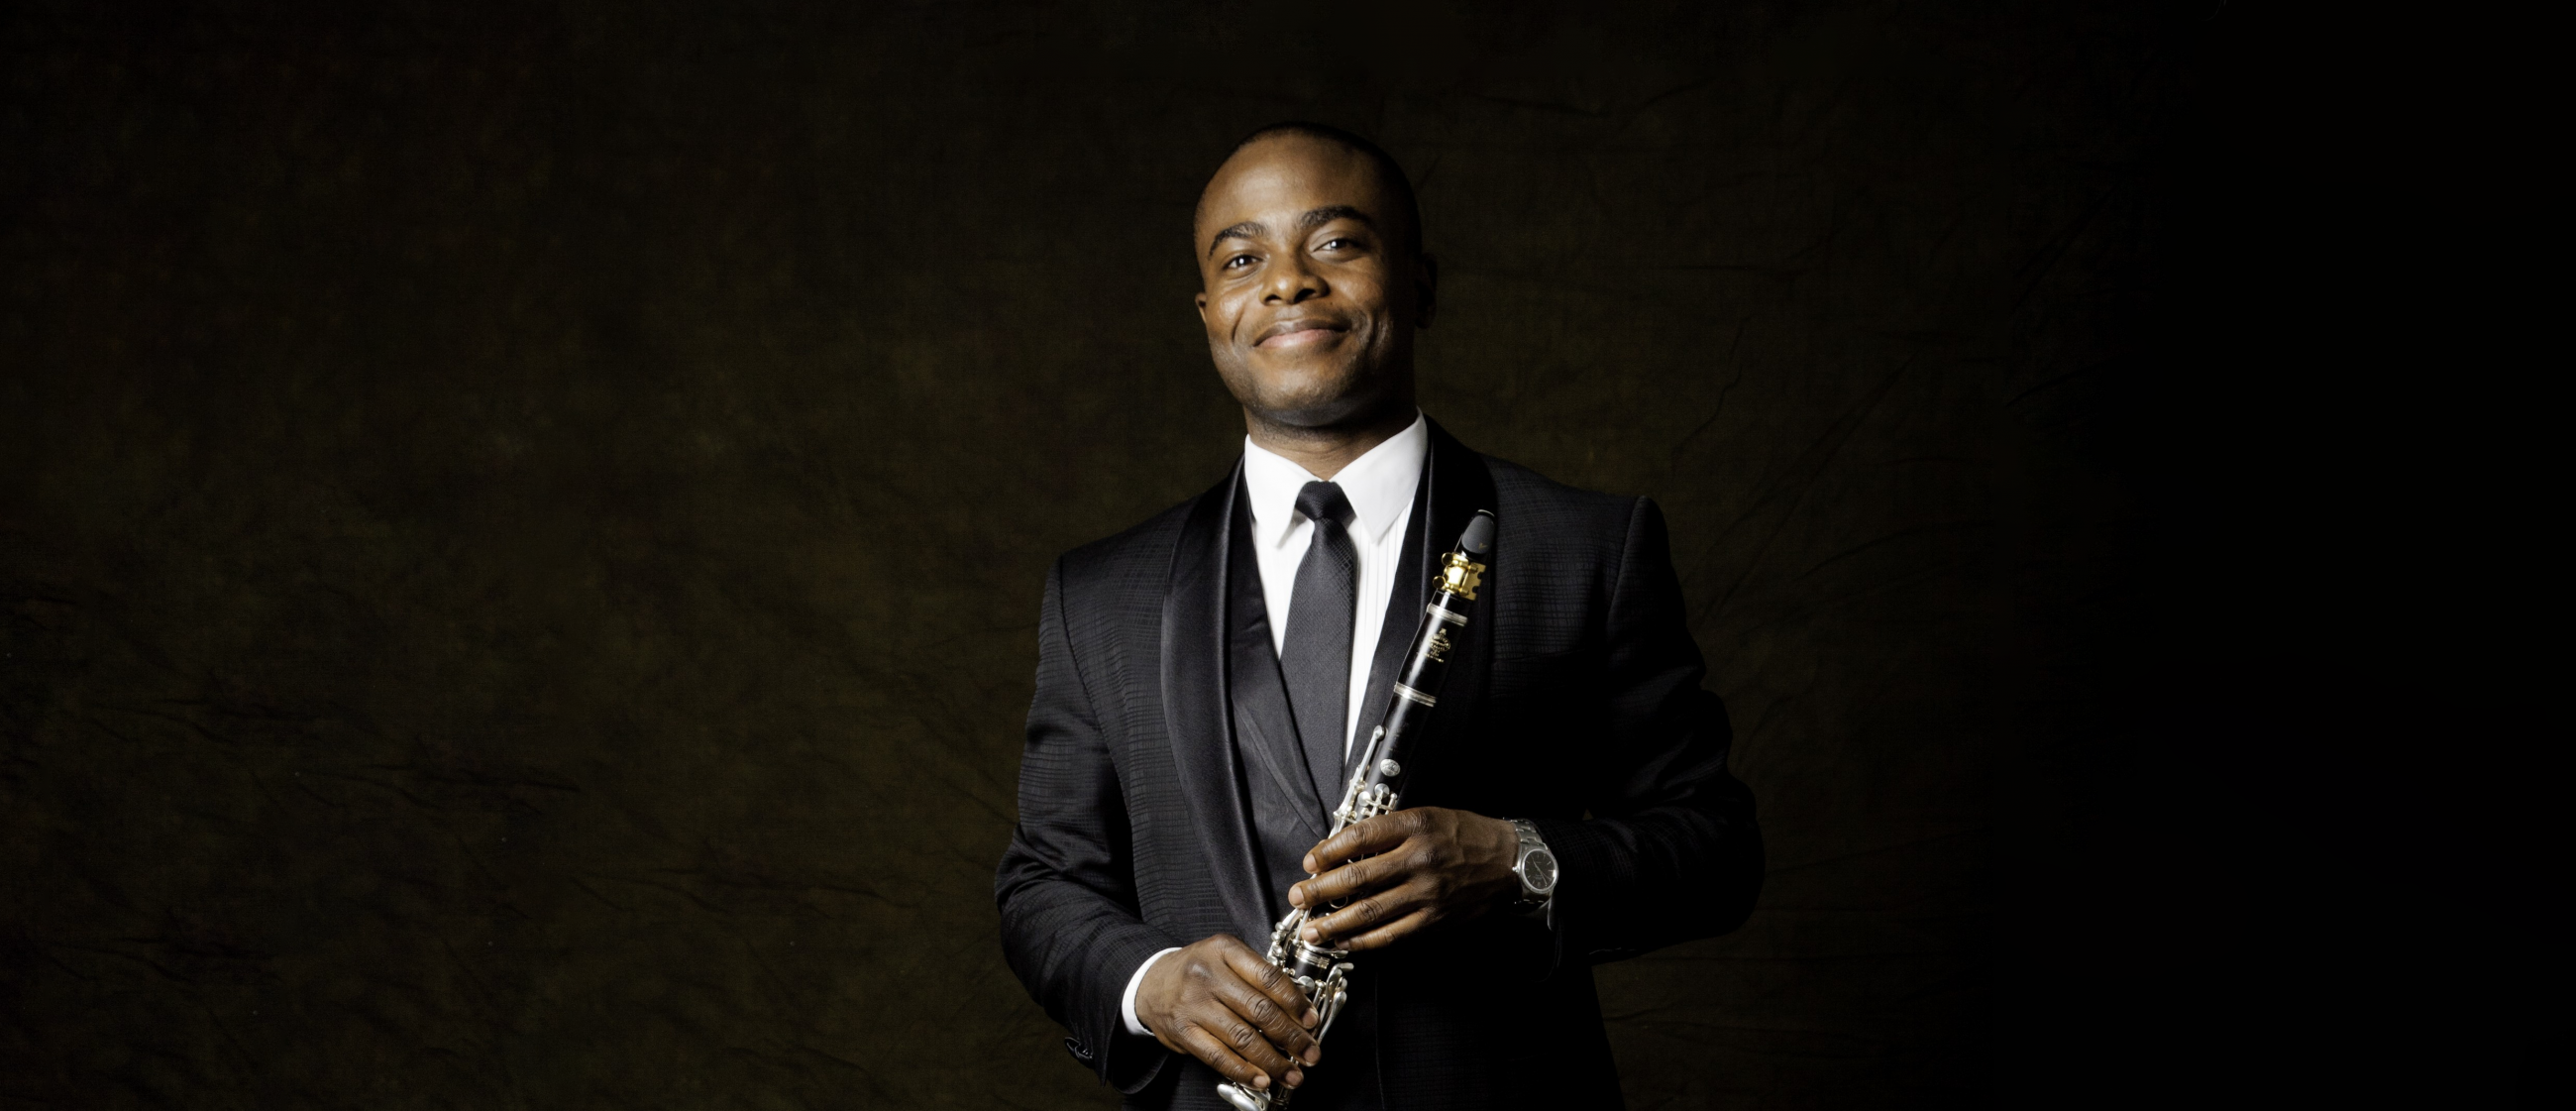 Anthony McGill wears a black suit with white shirt and black tie holding his clarinet